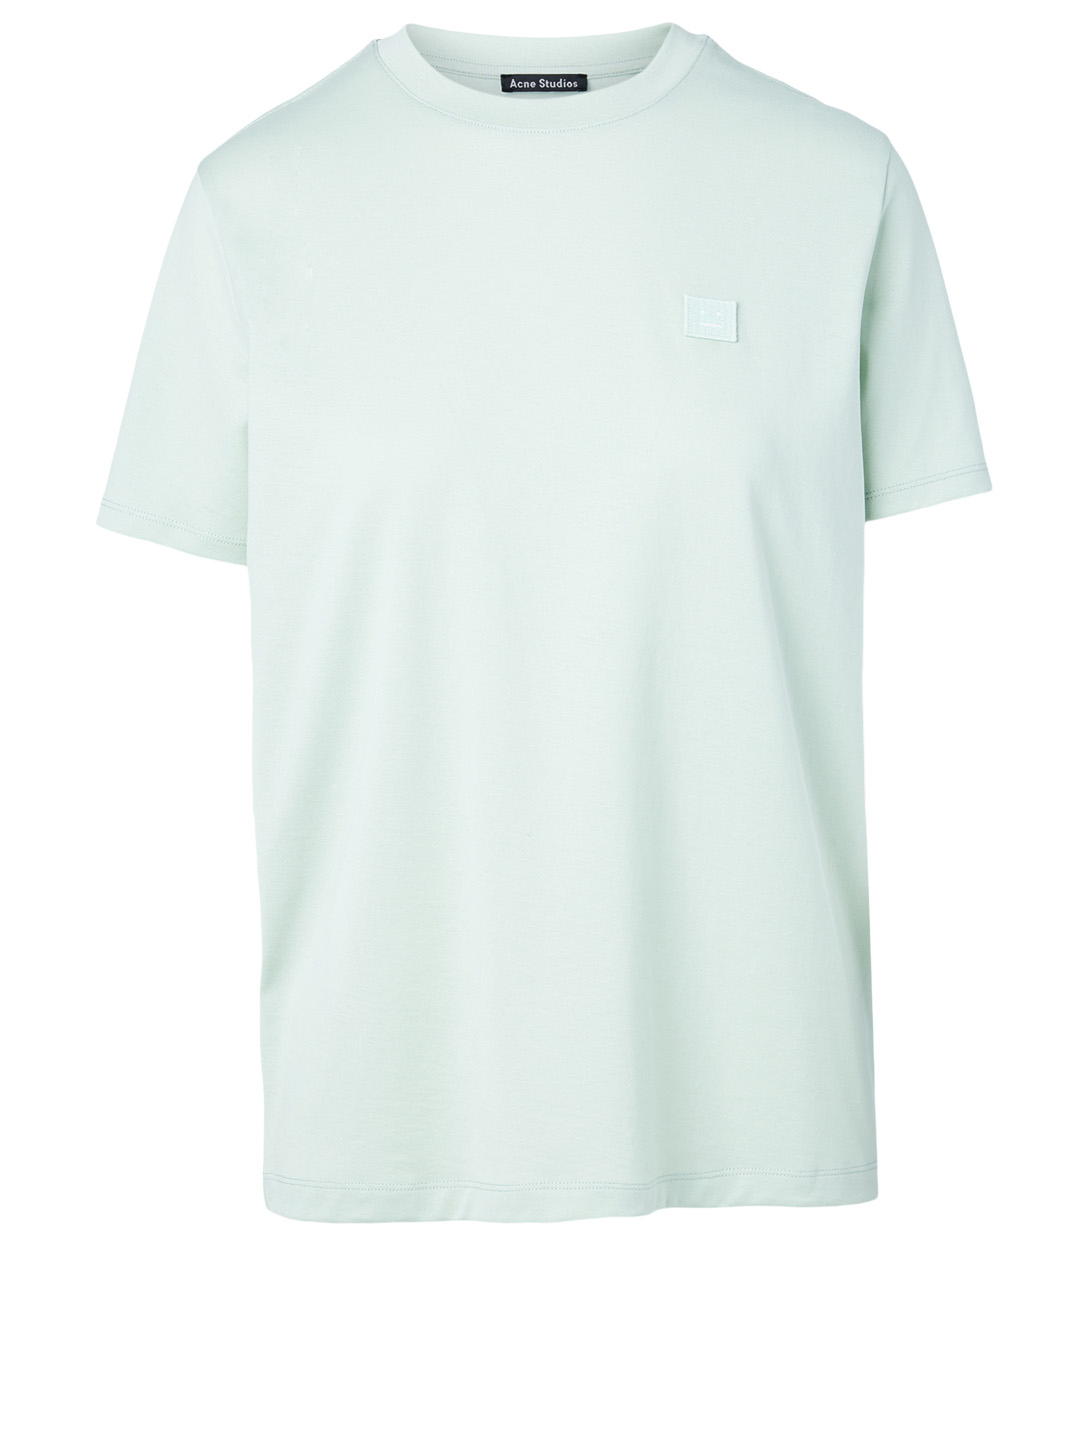 ACNE STUDIOS Cotton Face T-Shirt Women's Green